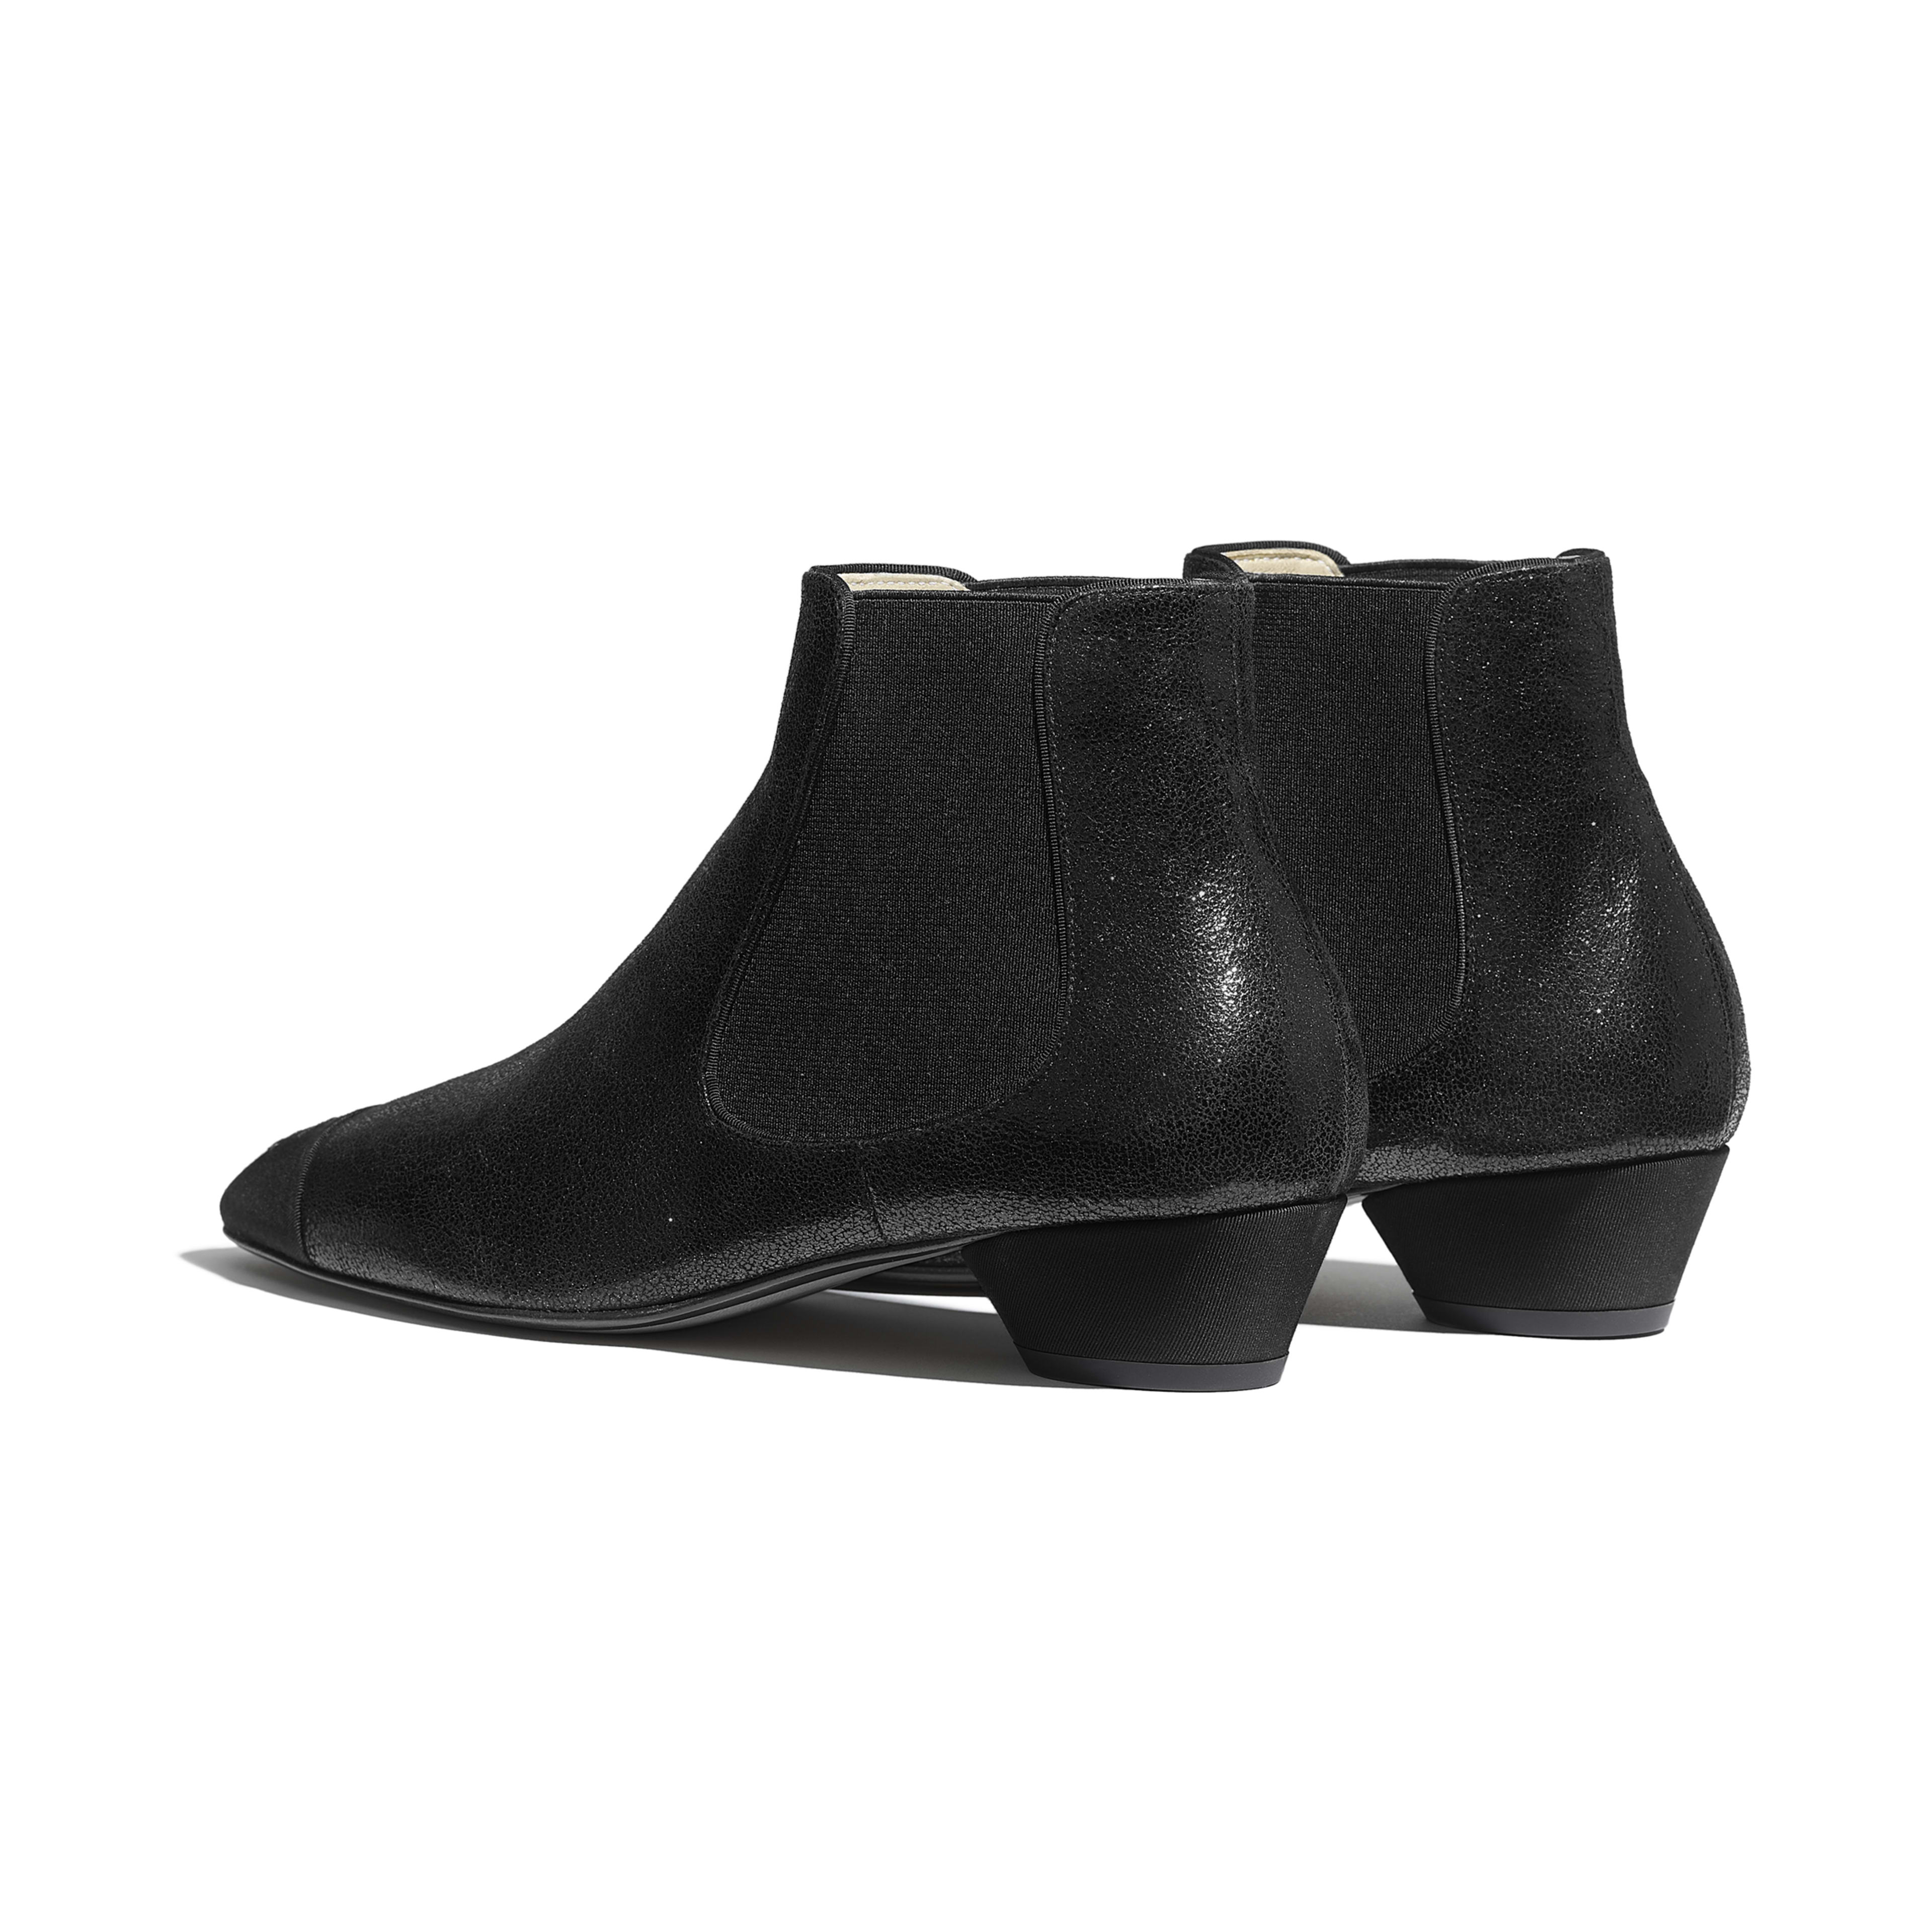 Ankle Boots - Black - Goatskin & Grosgrain - Other view - see full sized version